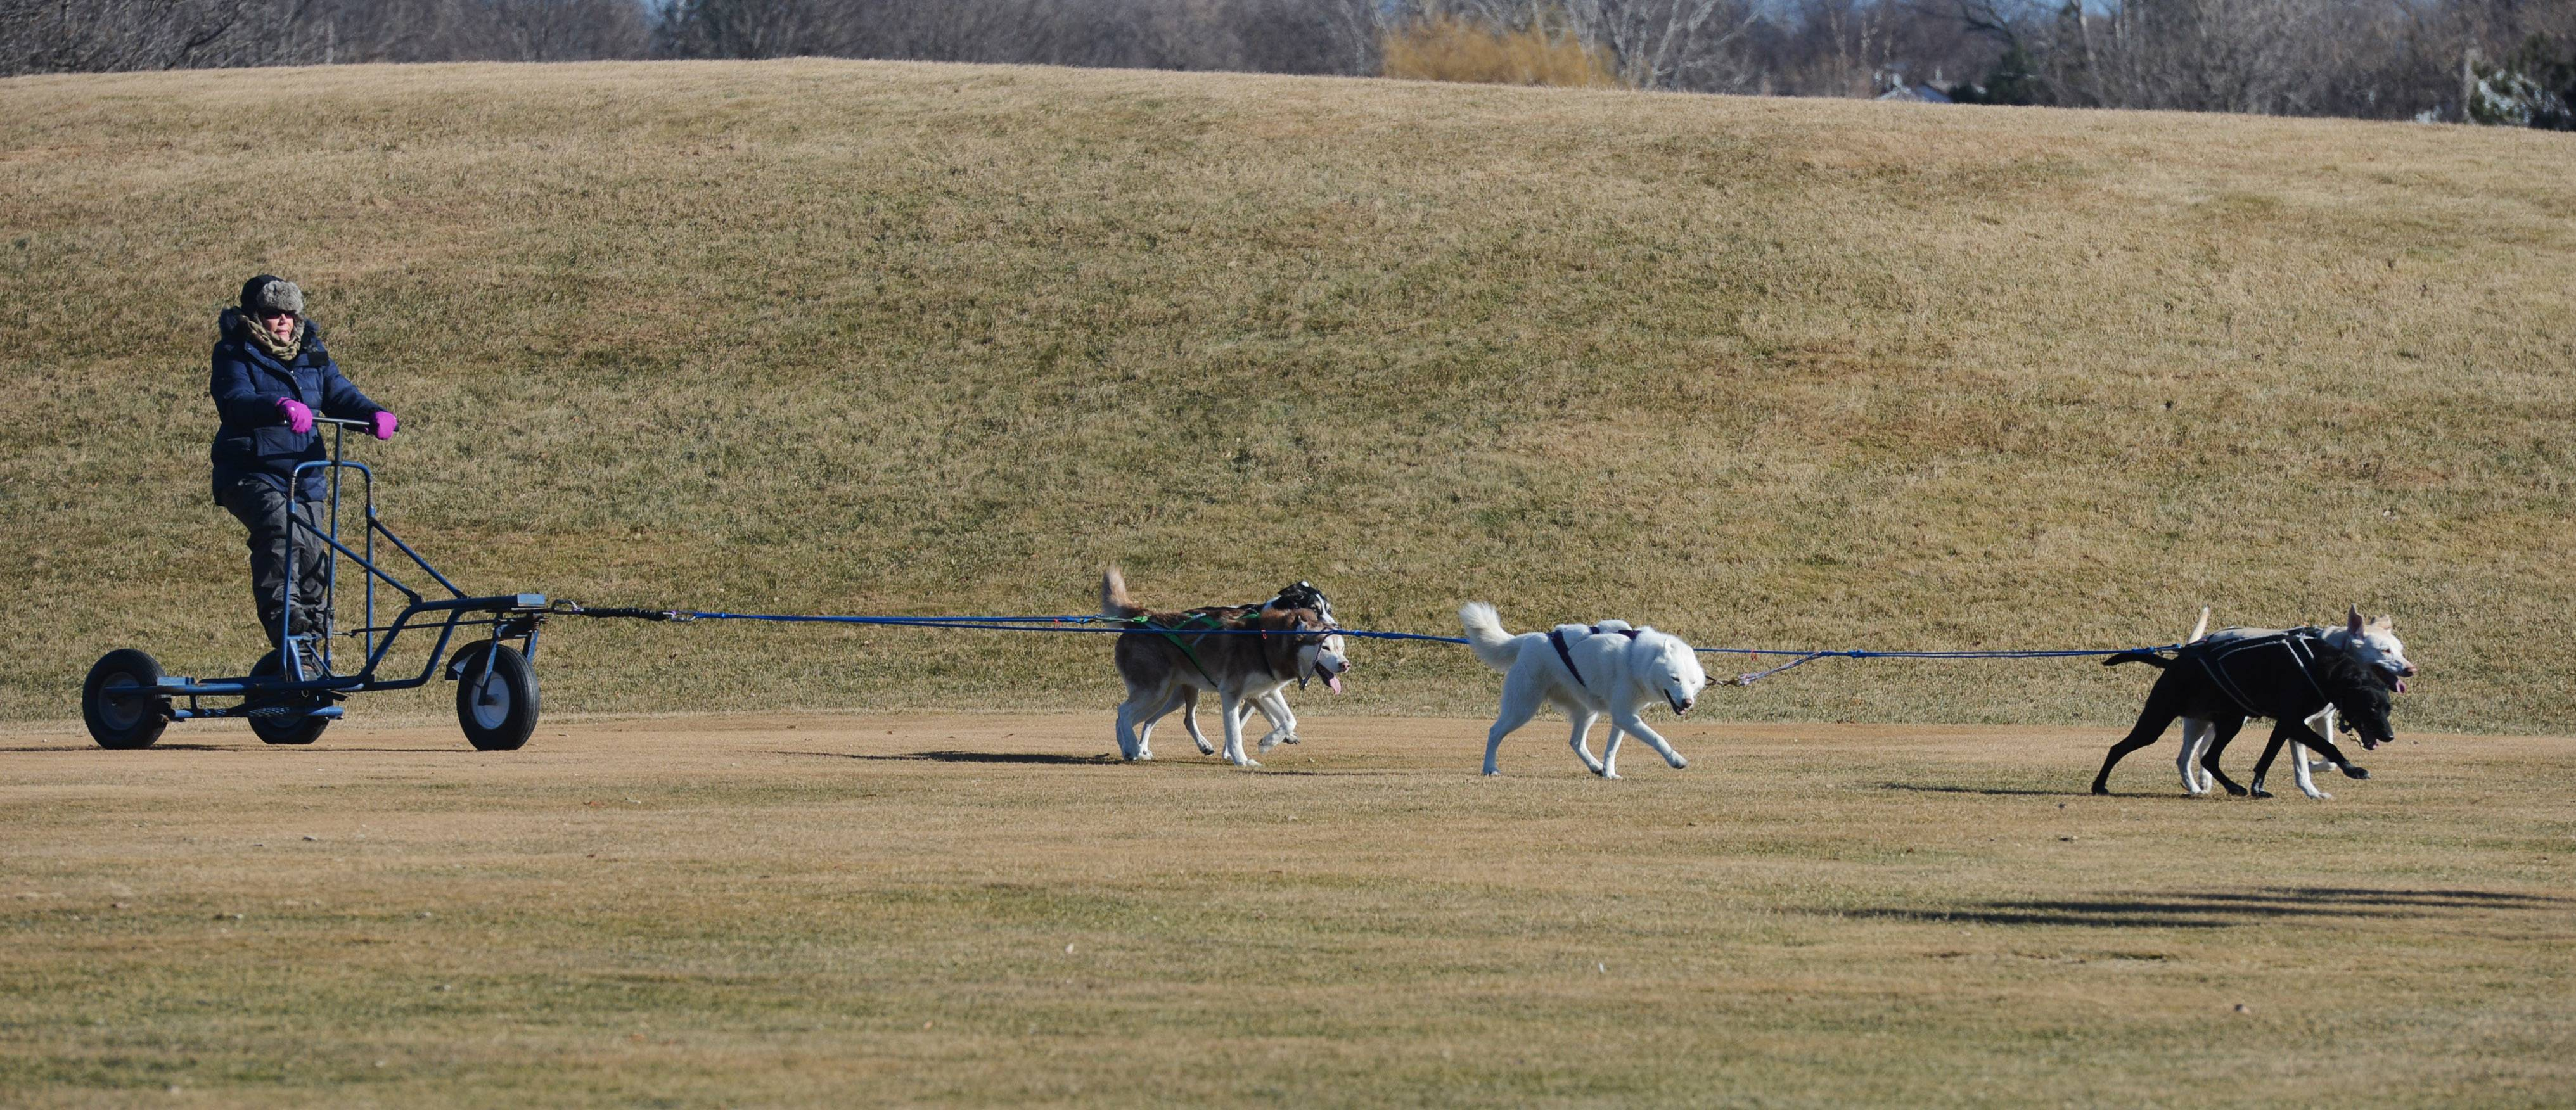 Dogs pull a wheeled sled guided by Annette McNeely of Lemont during a demonstration by the Green Valley Dog Drivers during Frosty Fest at Bittersweet Golf Club in Gurnee Saturday.